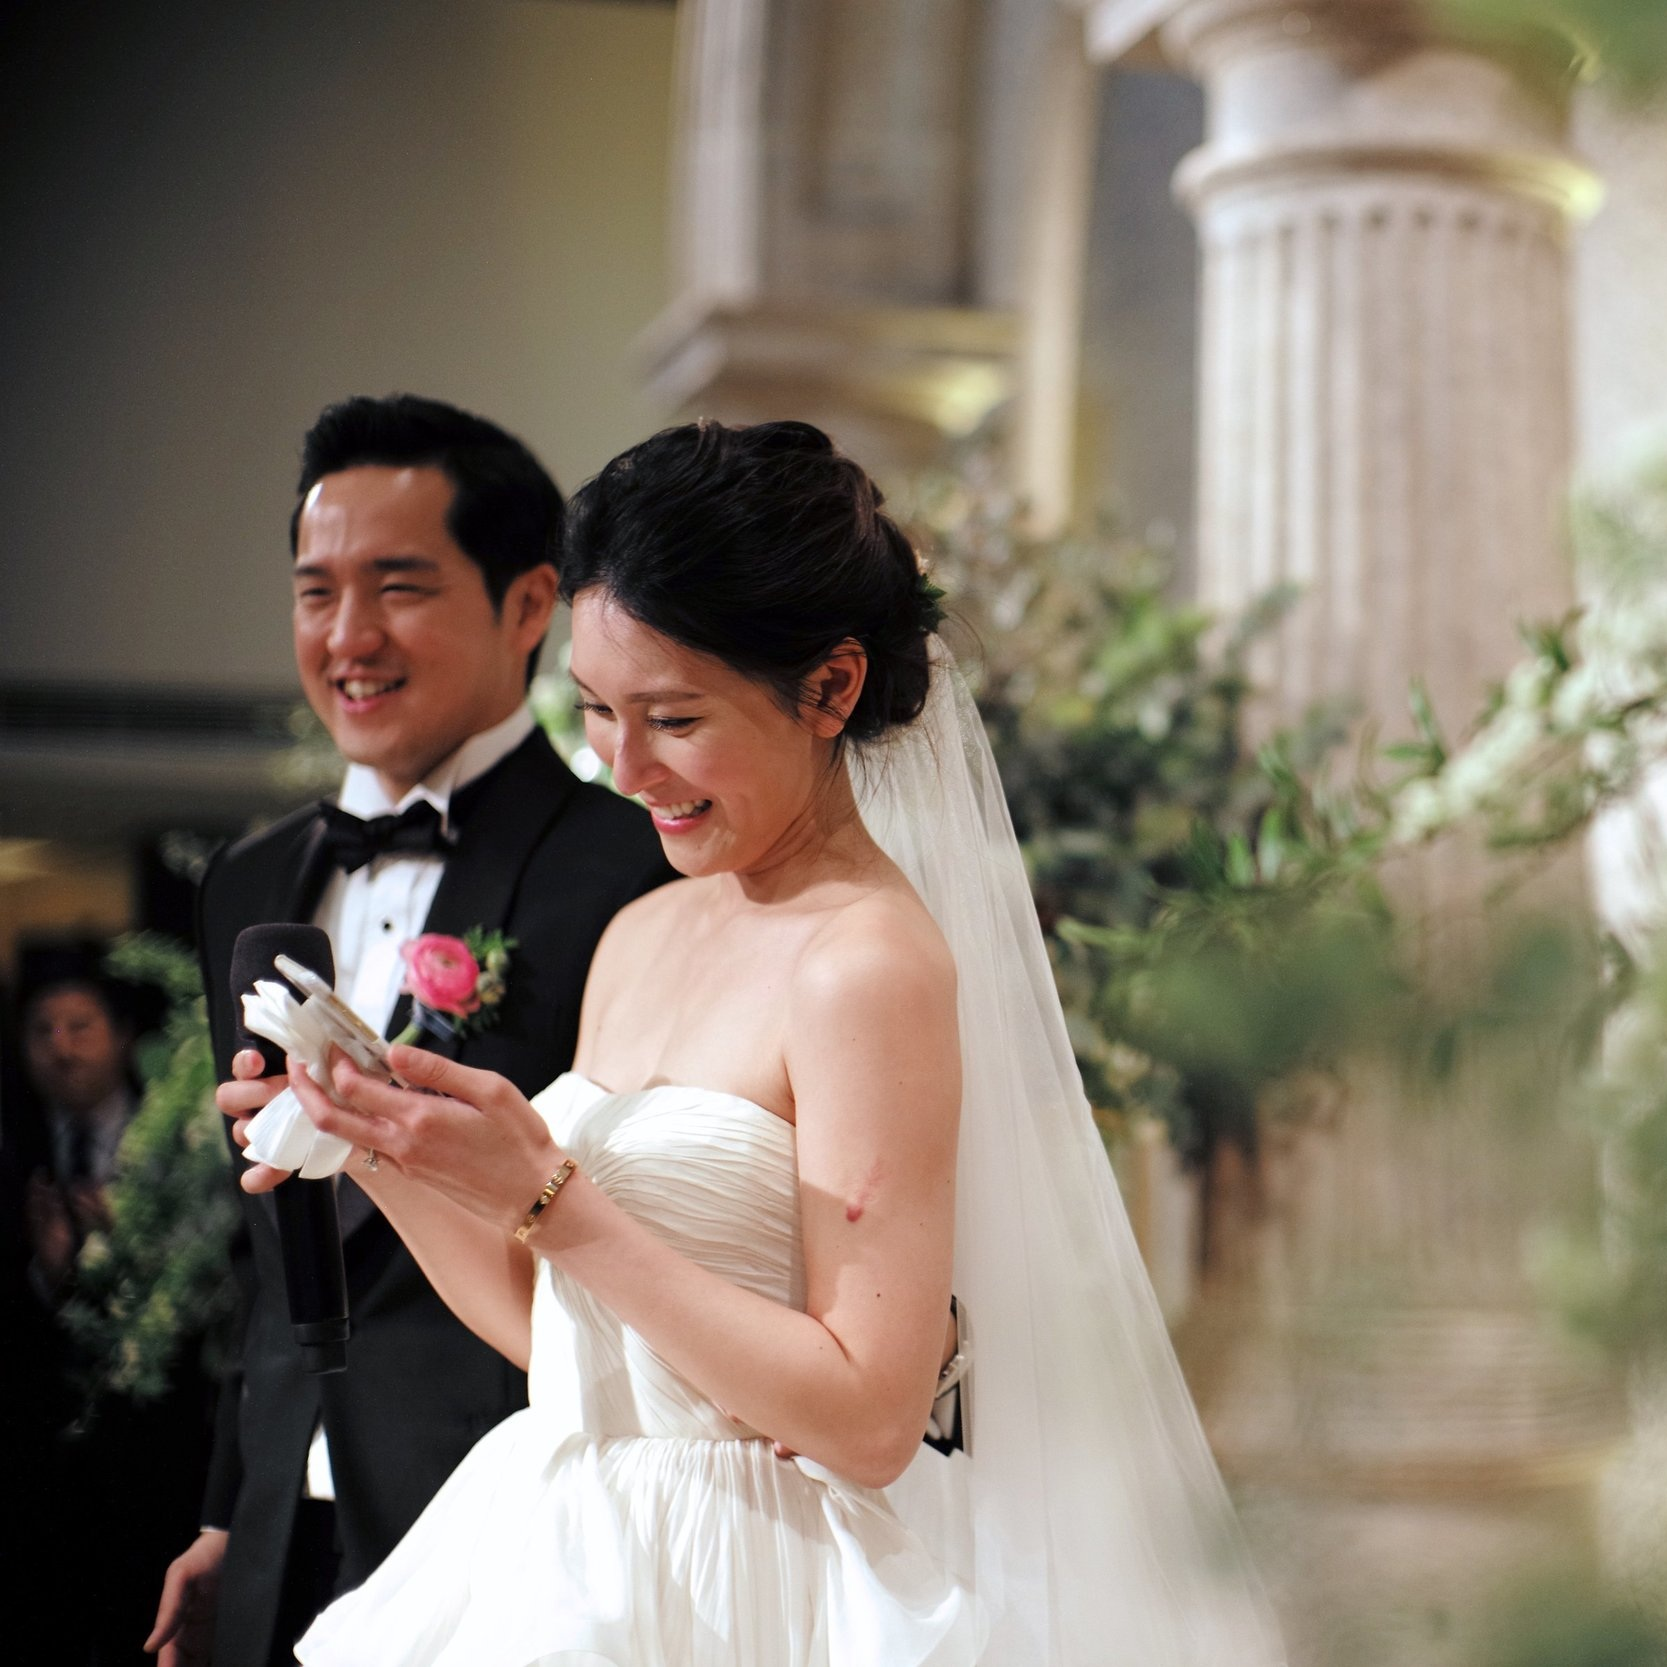 Joan-Adrian-HKJC-Wedding-planner-Hong-Kong-Club-Jockey